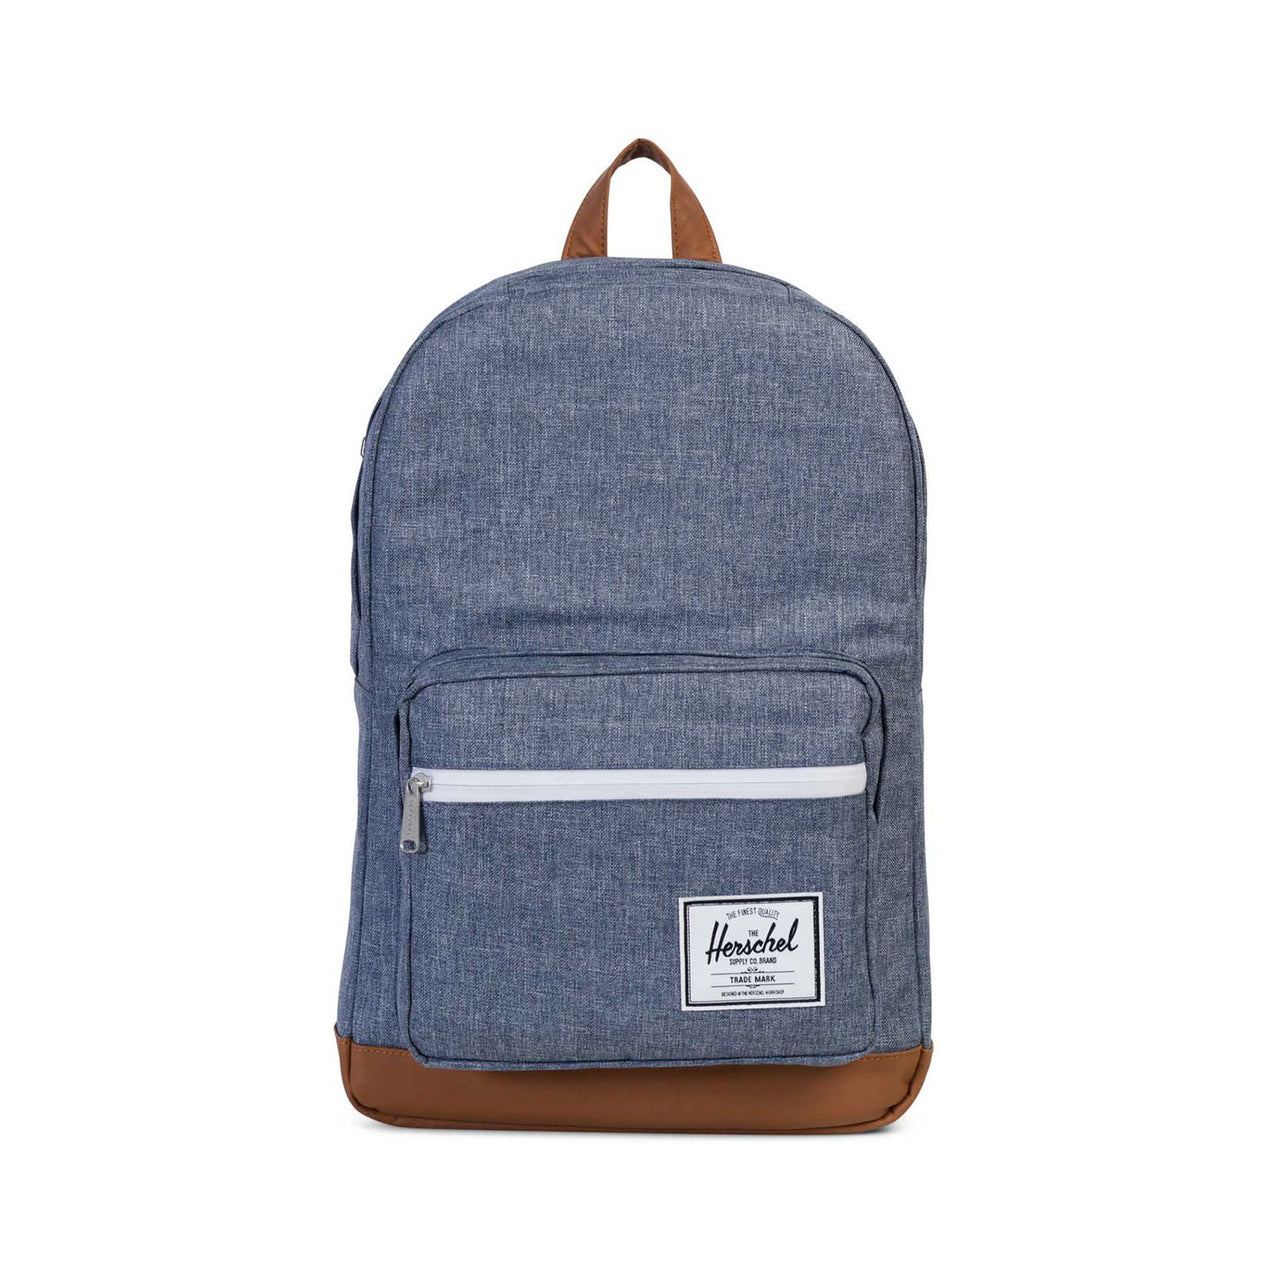 49358c5775c Herschel Supply Co. Pop Quiz Backpack Dark Chambray Crosshatch - Tan  Synthetic Leather